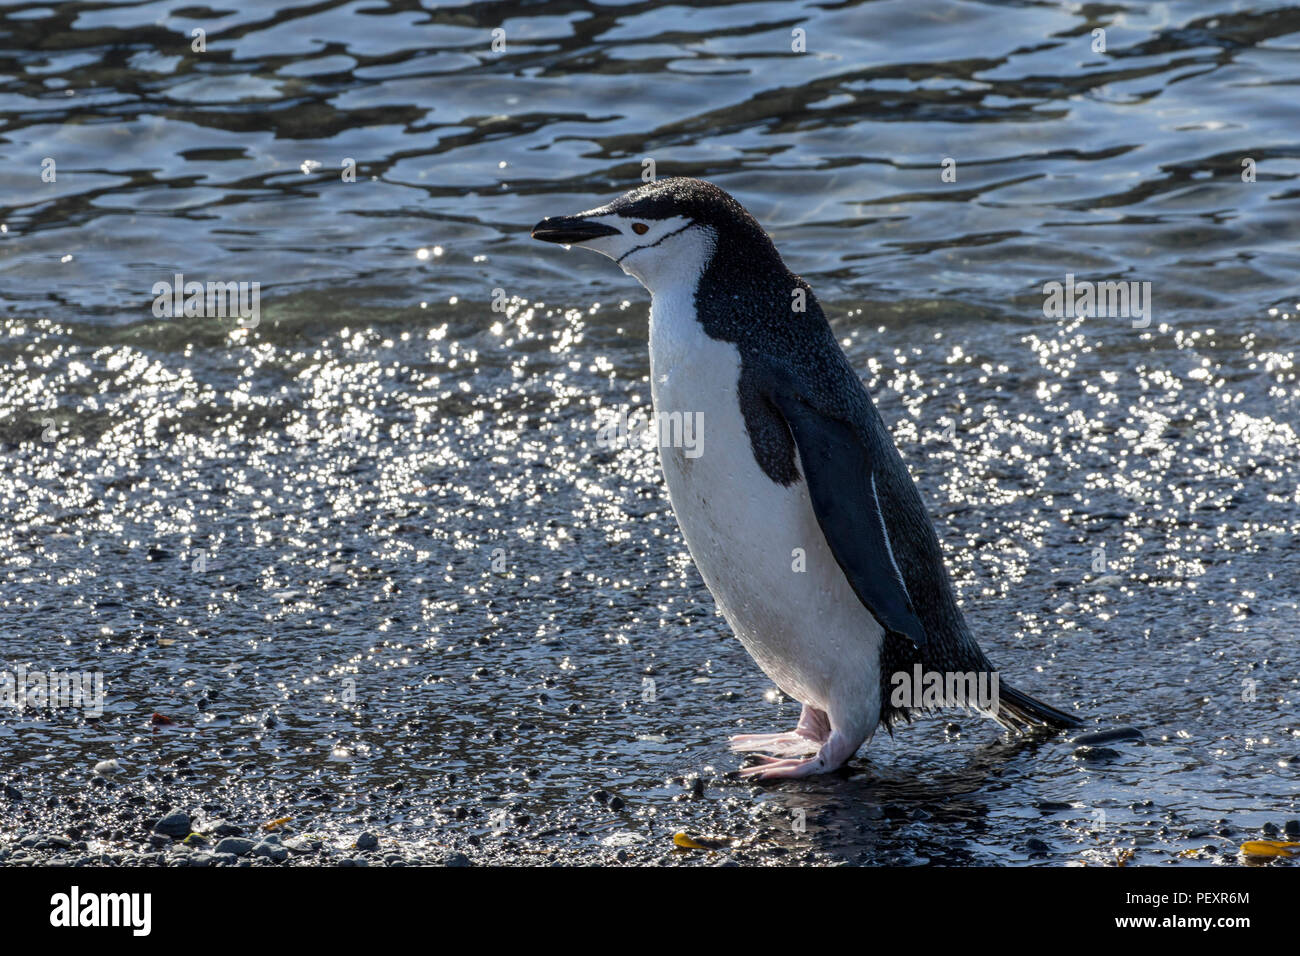 Chinstrap penguin rookery on the South Shetland Islands - Stock Image